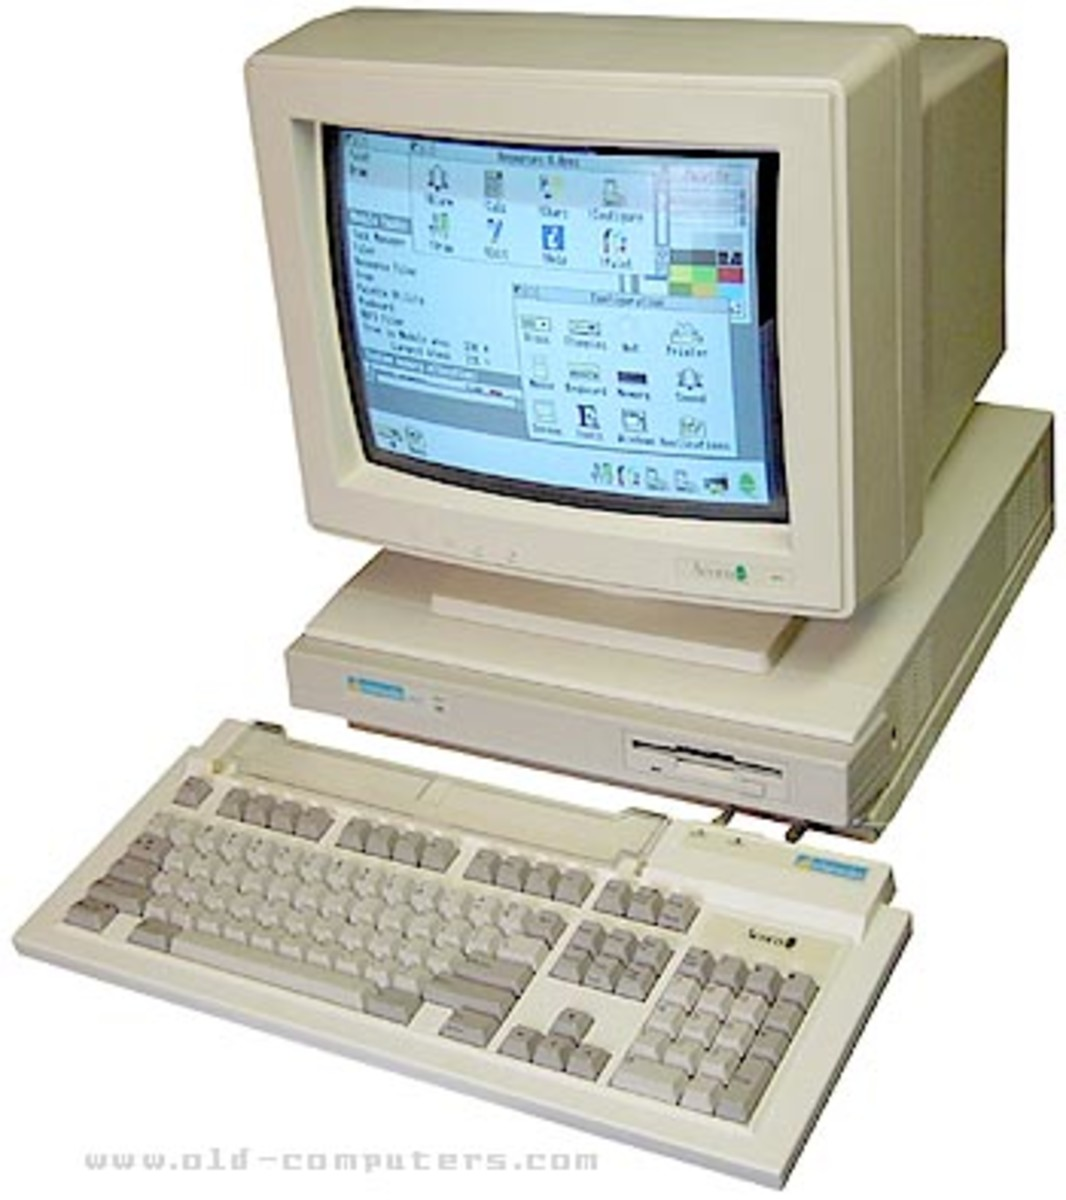 The Acorn Archimedes could be used for any purpose.